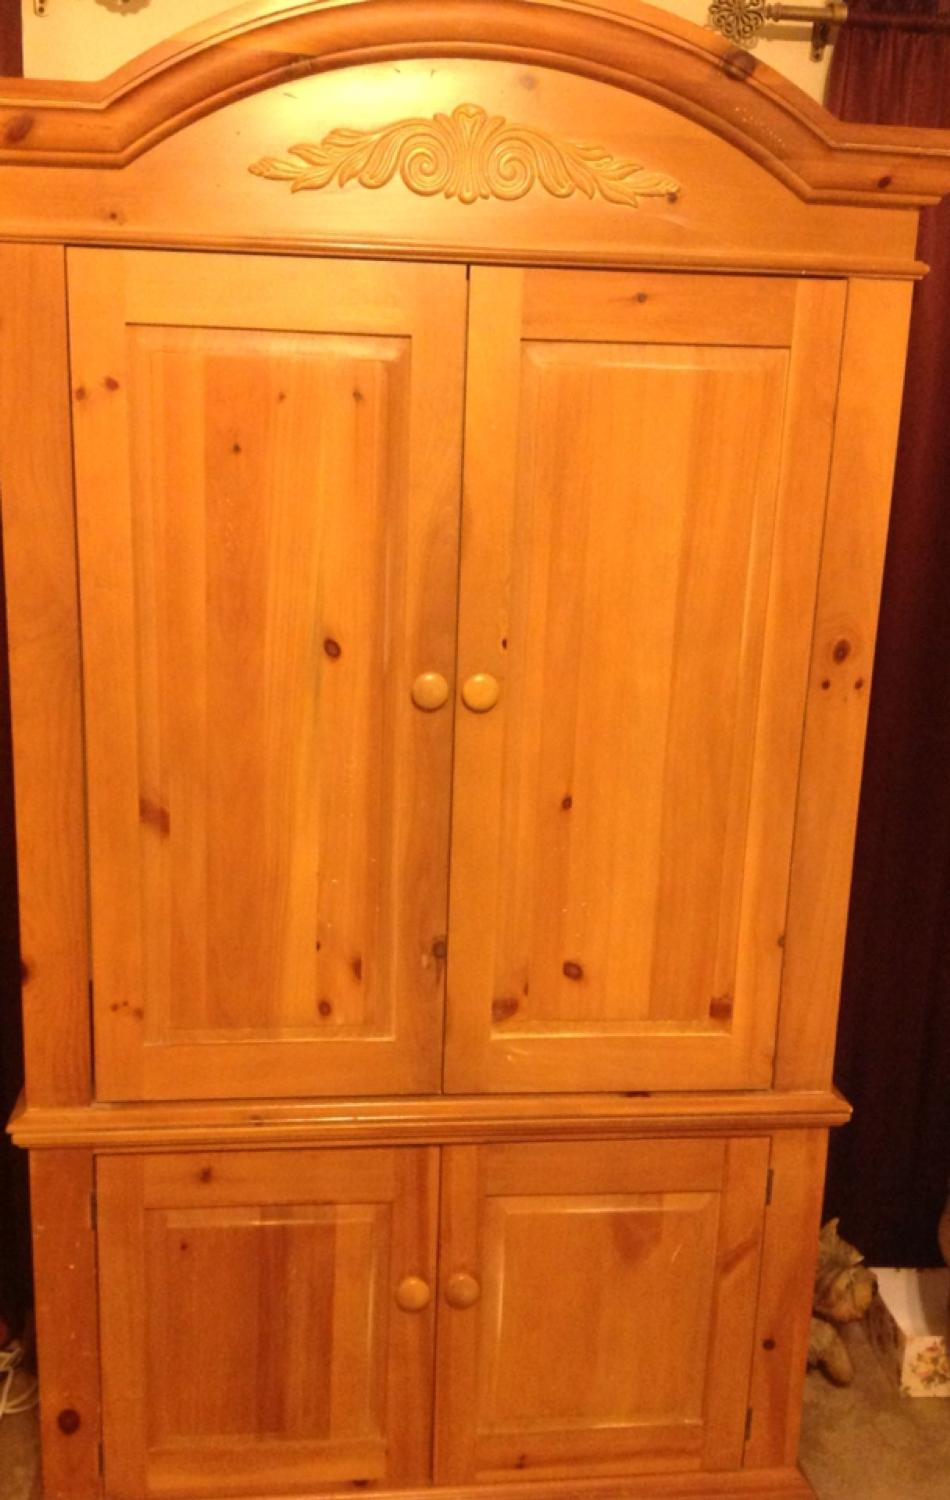 Best Gorgeous Broyhill Fontana Distressed Solid Pine Armoire Tv Entertainment Center In Excellent Condition For Sale Katy Texas 2021